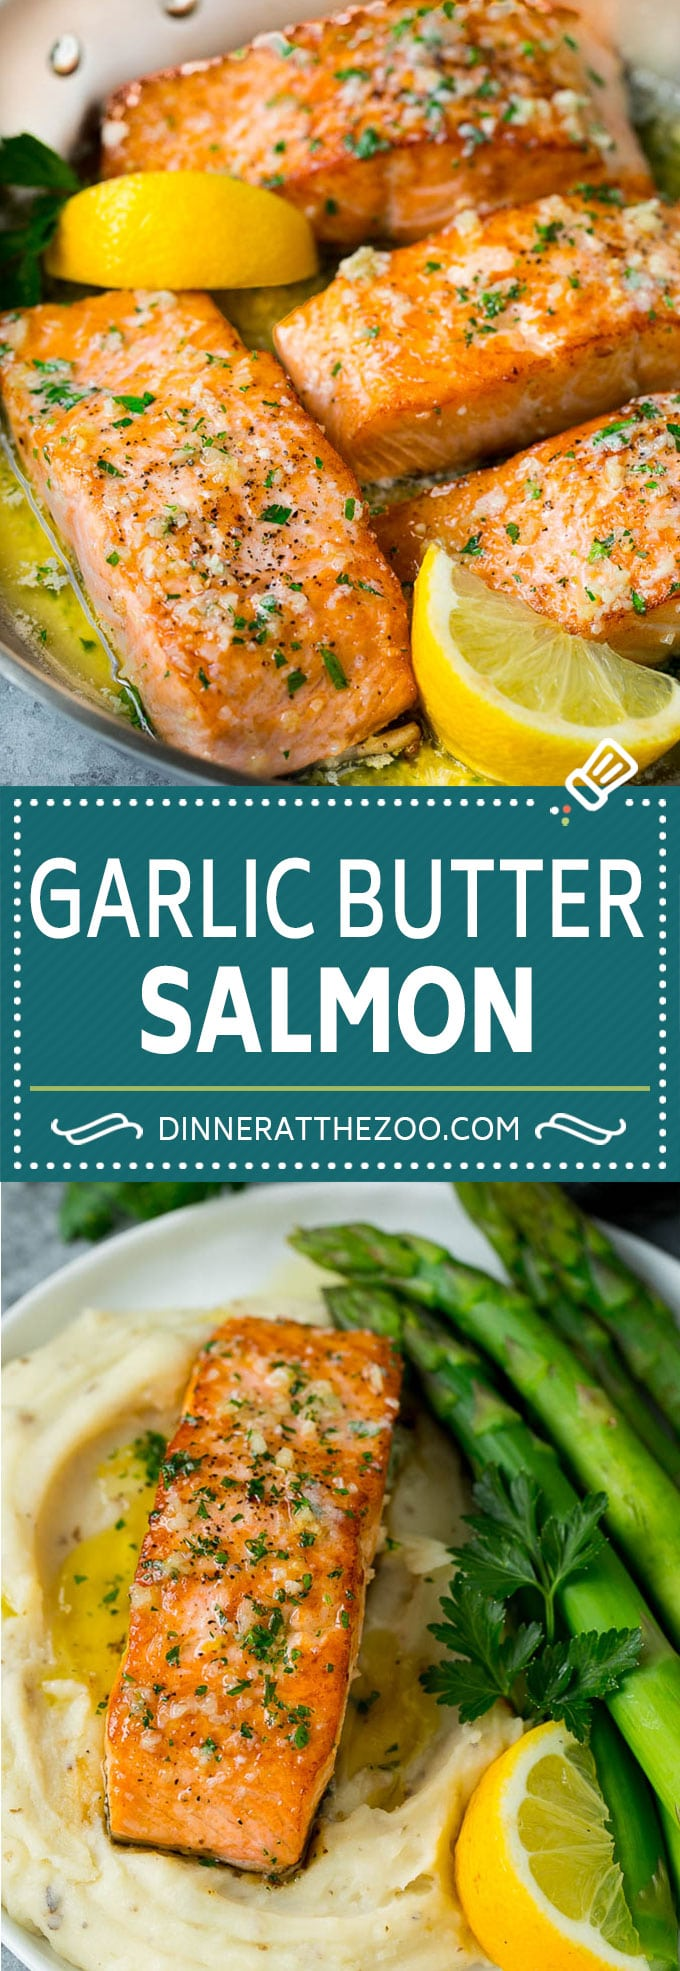 Pan Seared Salmon Recipe | Garlic Butter Salmon | Seared Salmon #salmon #garlic #butter #keto #lowcarb #dinner #dinneratthezoo